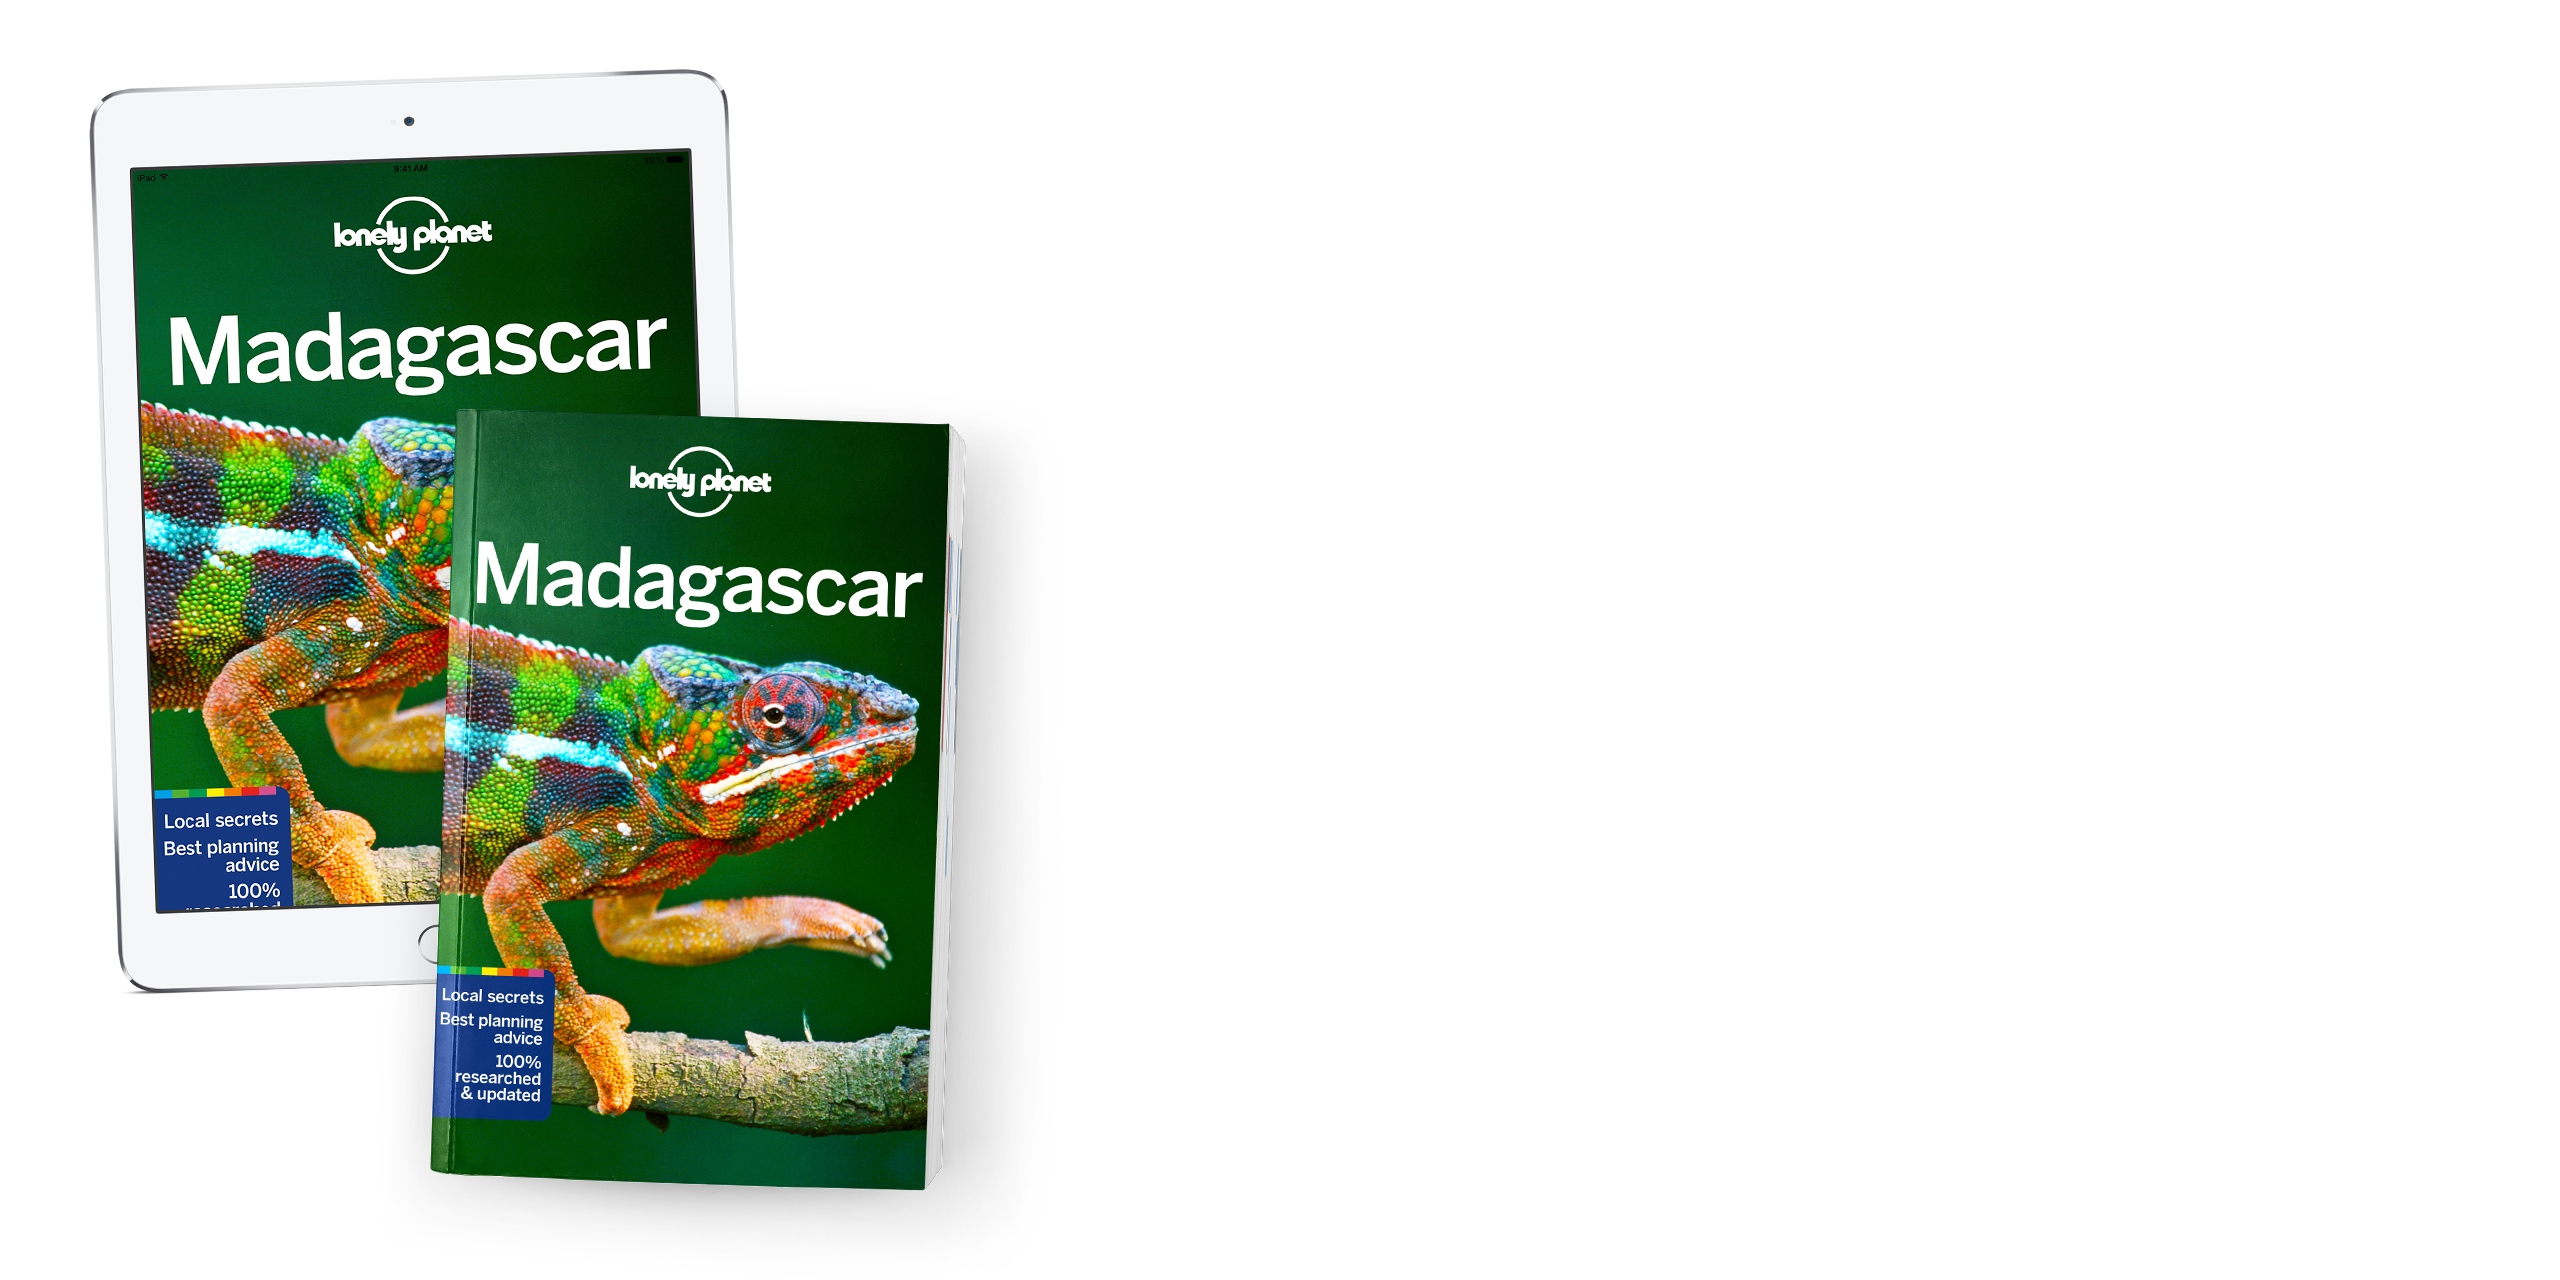 Lonely Planet's Madagascar 9th edition out now